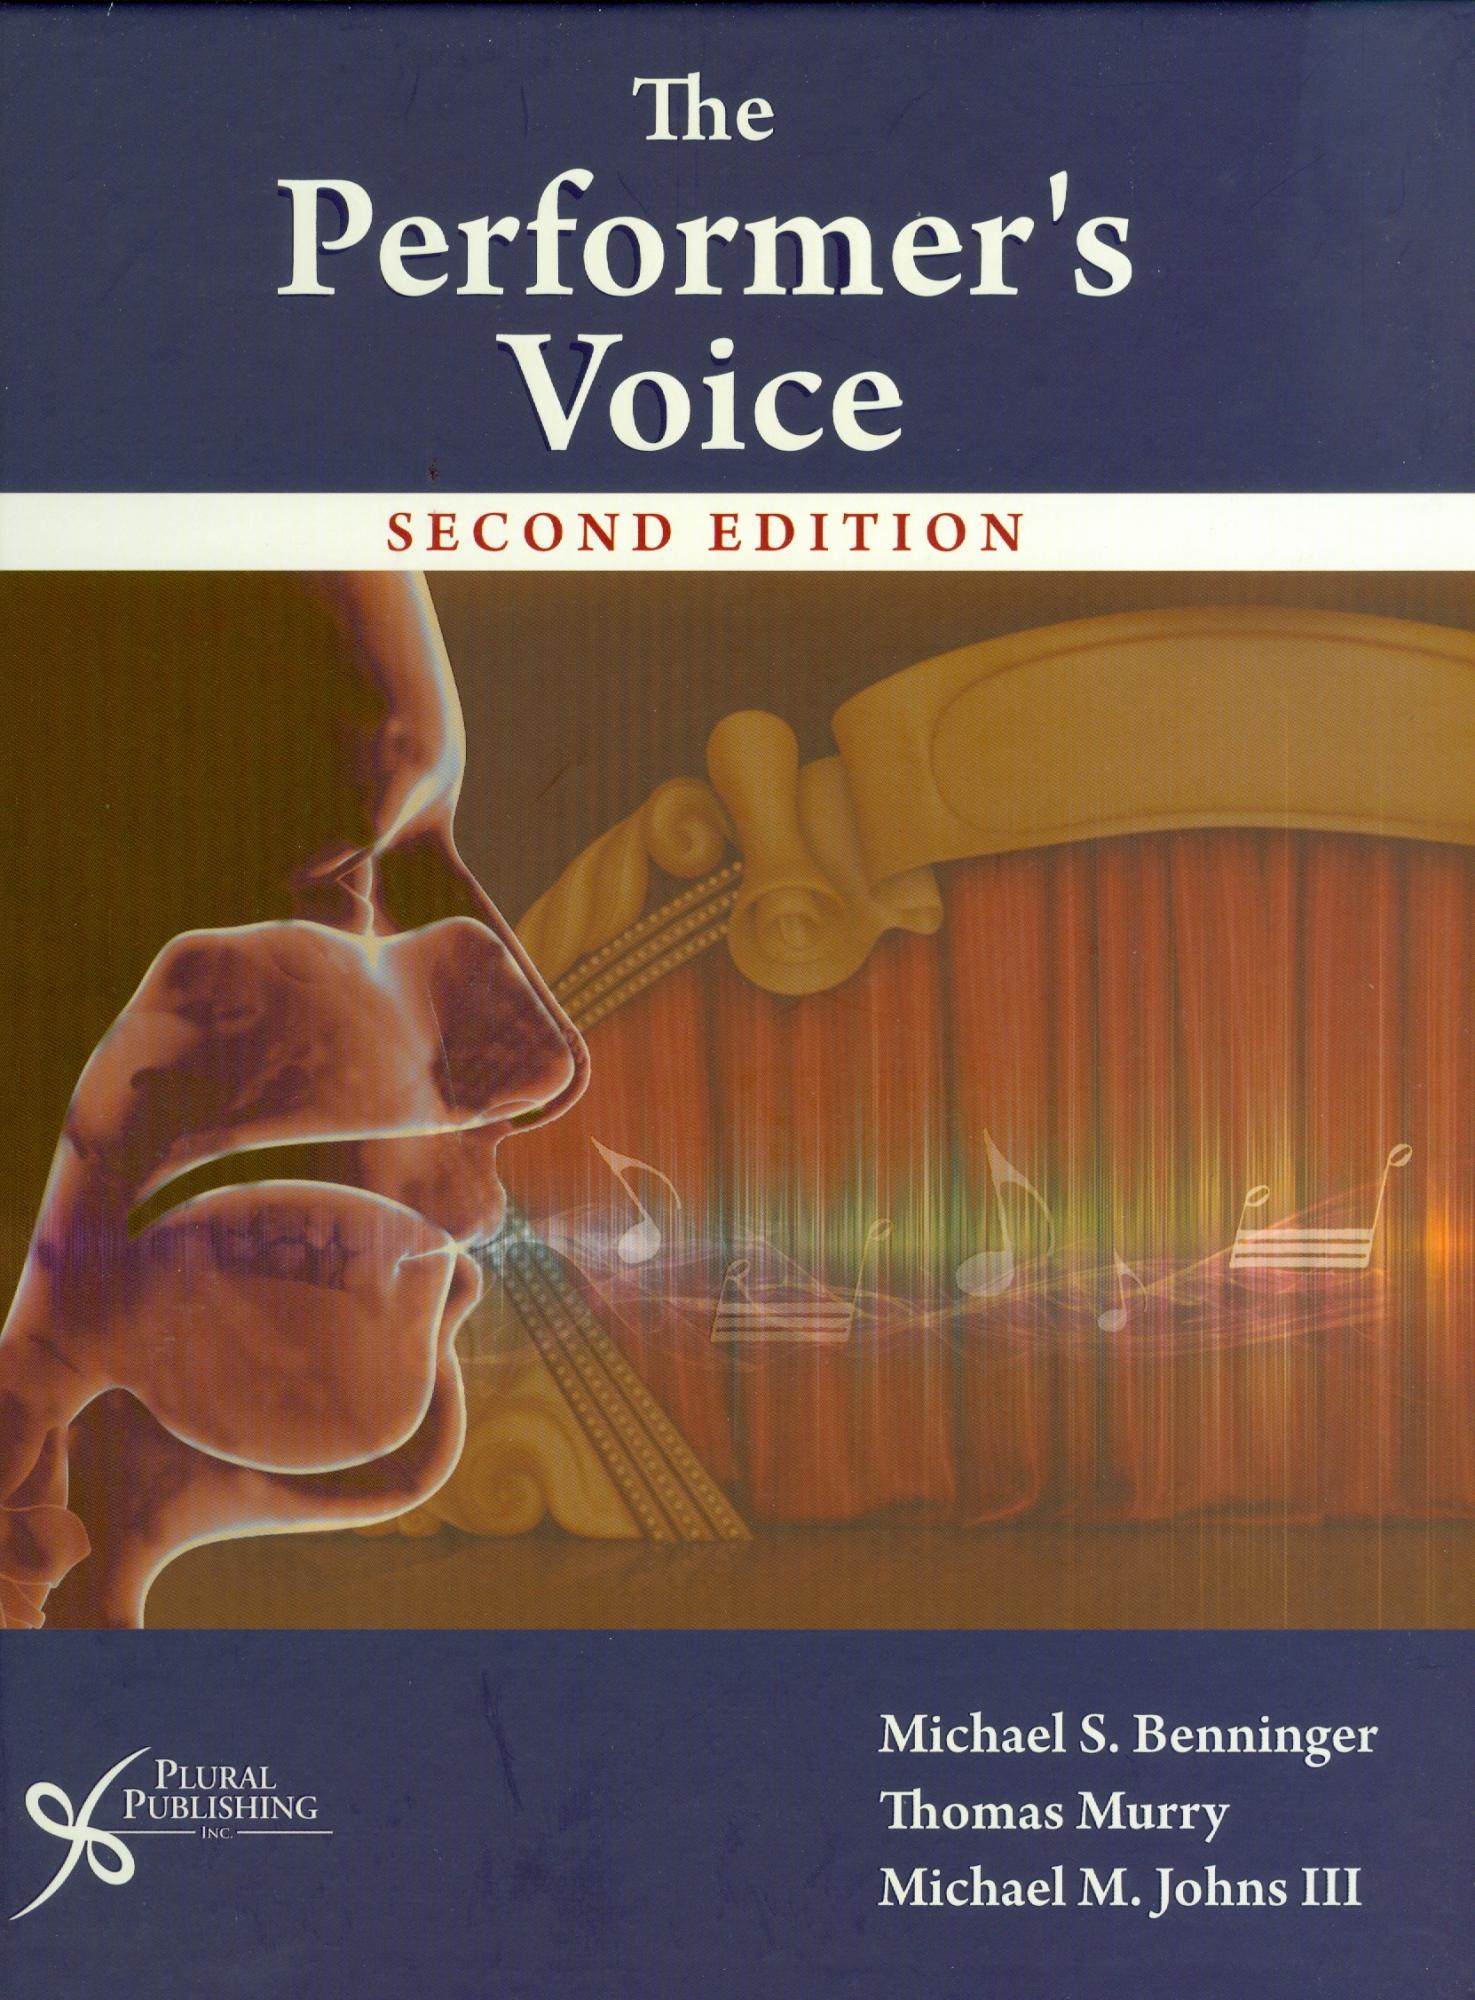 The Performer's Voice, 2nd Edn